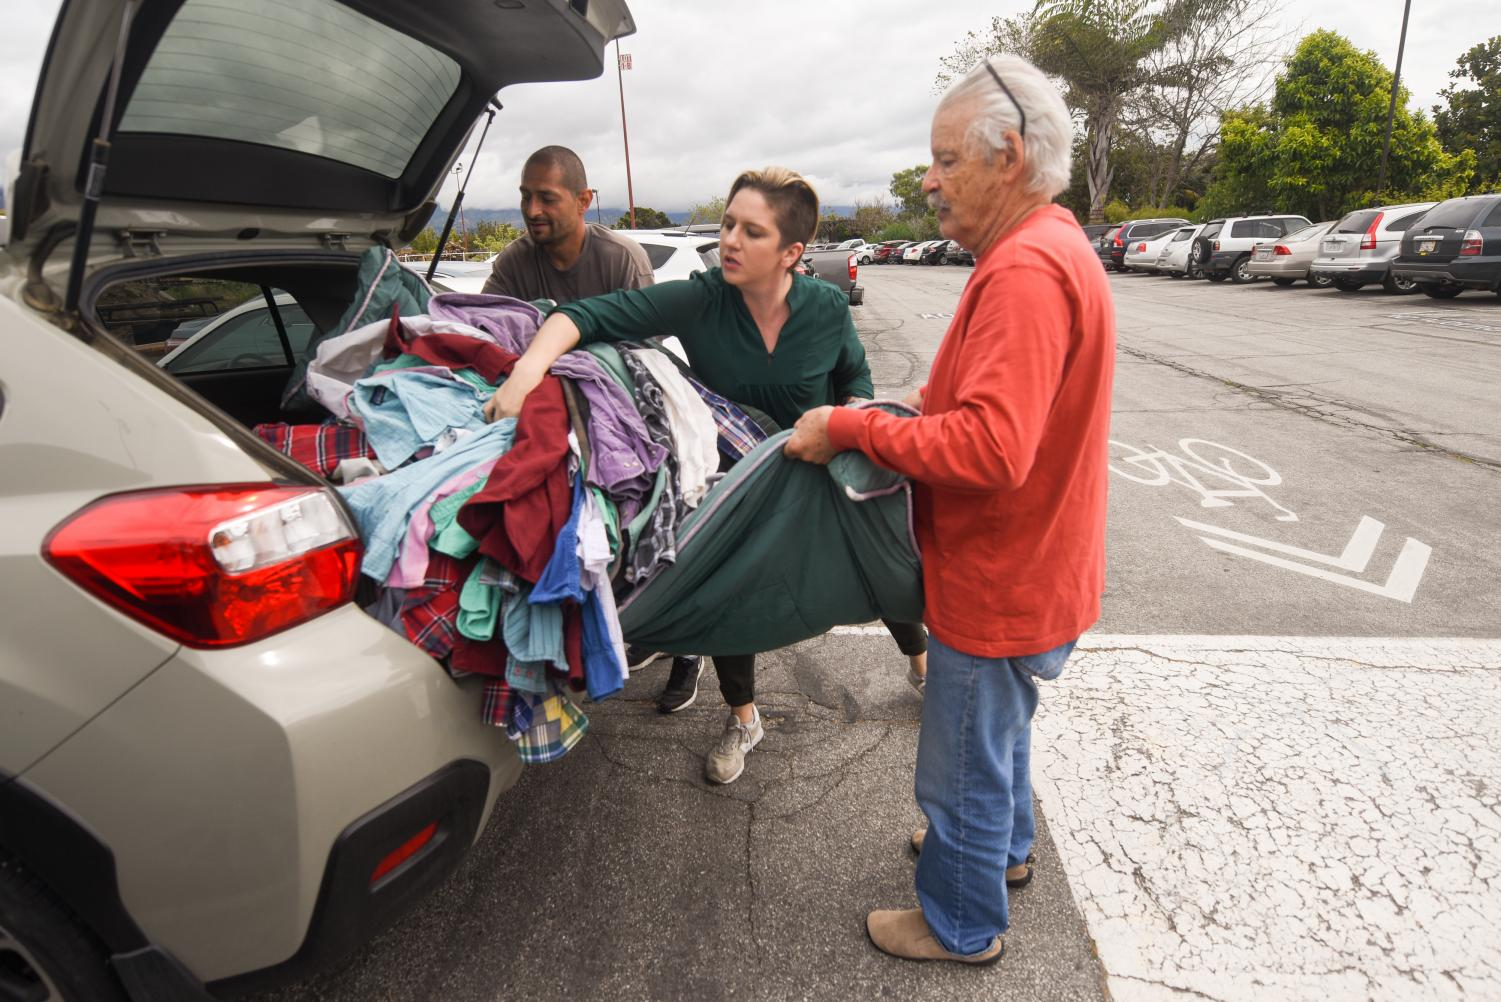 From left, Rafael Castro and Raeanne Napoleon help Larry Friesen unload his donation of 110 shirts to Tiffany's Closet on Friday, April 5, 2019, in front of the donation drop off Room ECC 6 at City College in Santa Barbara, Calif. Castro stepped in to help unload the shirts and Napoleon organized the donations.